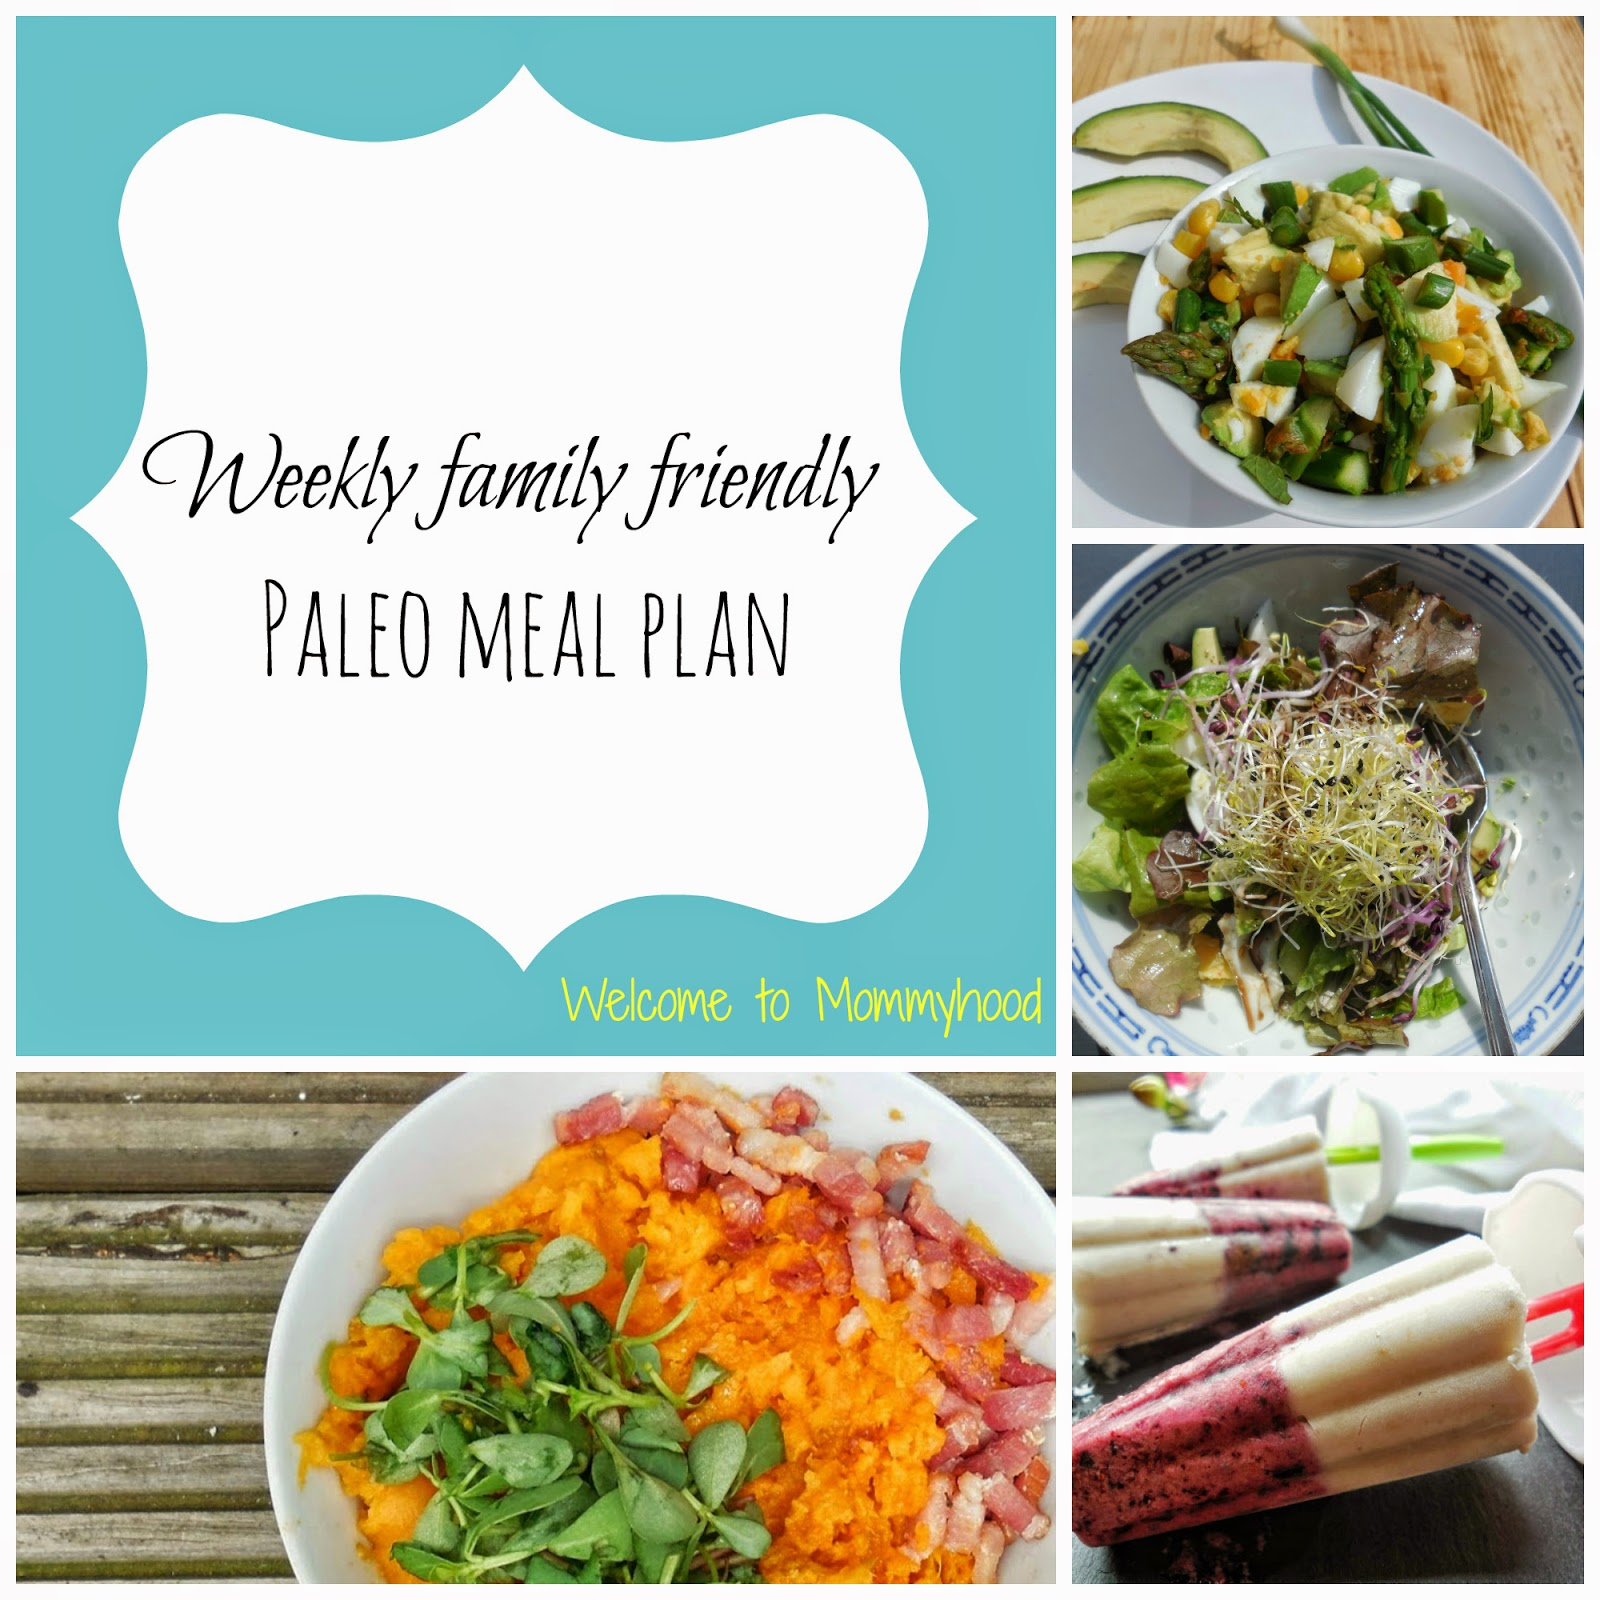 Paleo Meal Plan by Welcome to Mommyhood #paleo